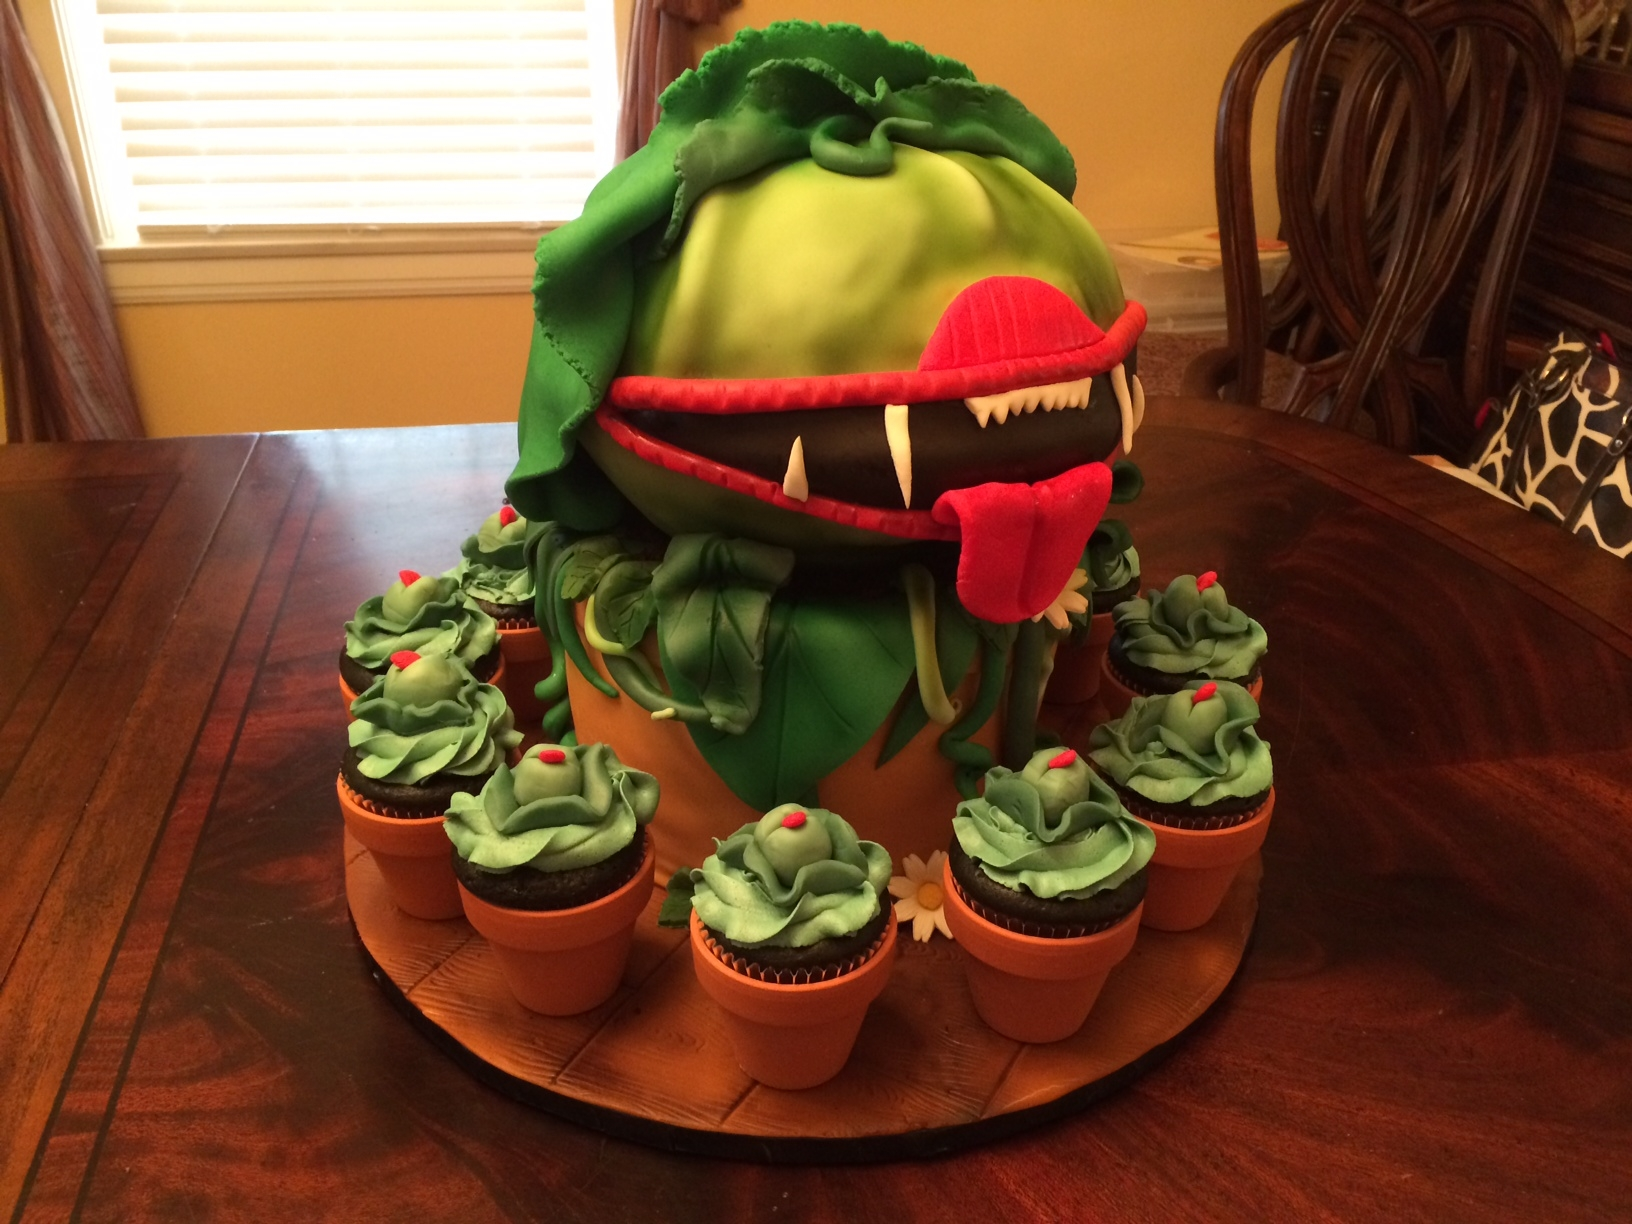 Little Shop Of Horrors - Audrey Ii - CakeCentral com